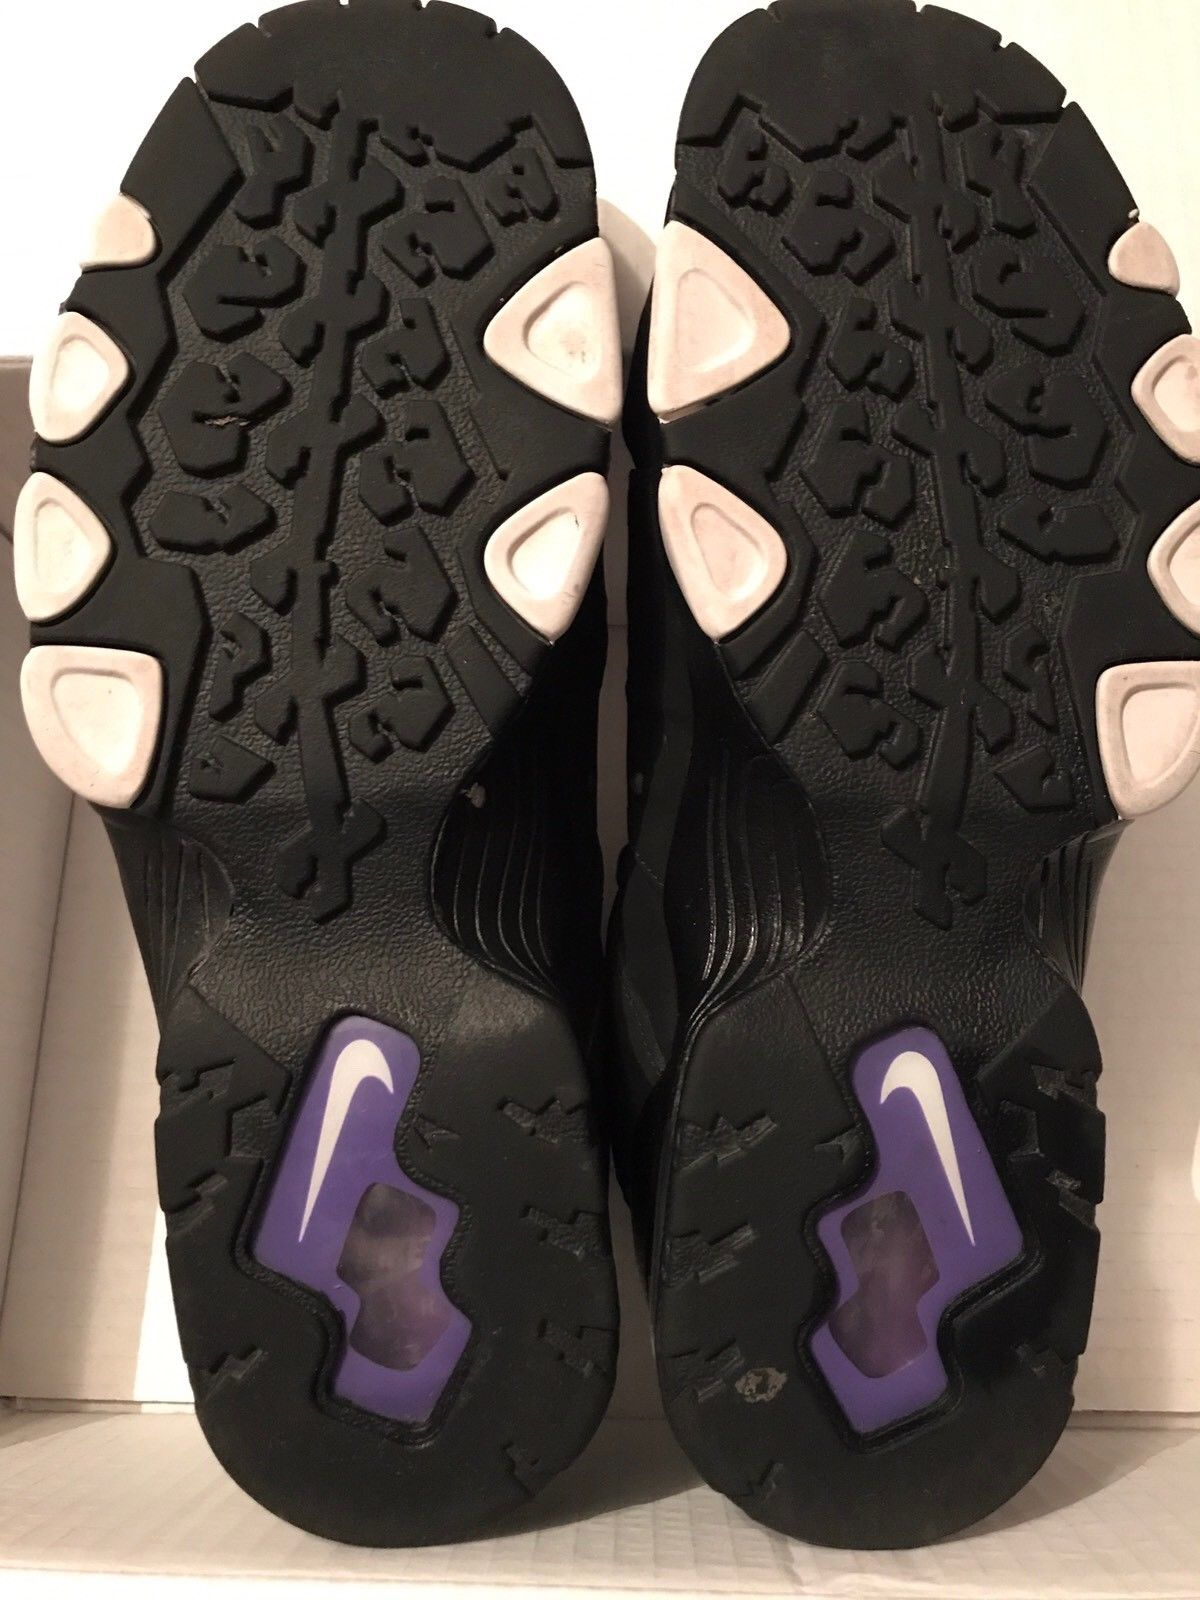 Image of Nike Air Max2 CB 94 Charles Barkley Black Purple - Size 13 - Used